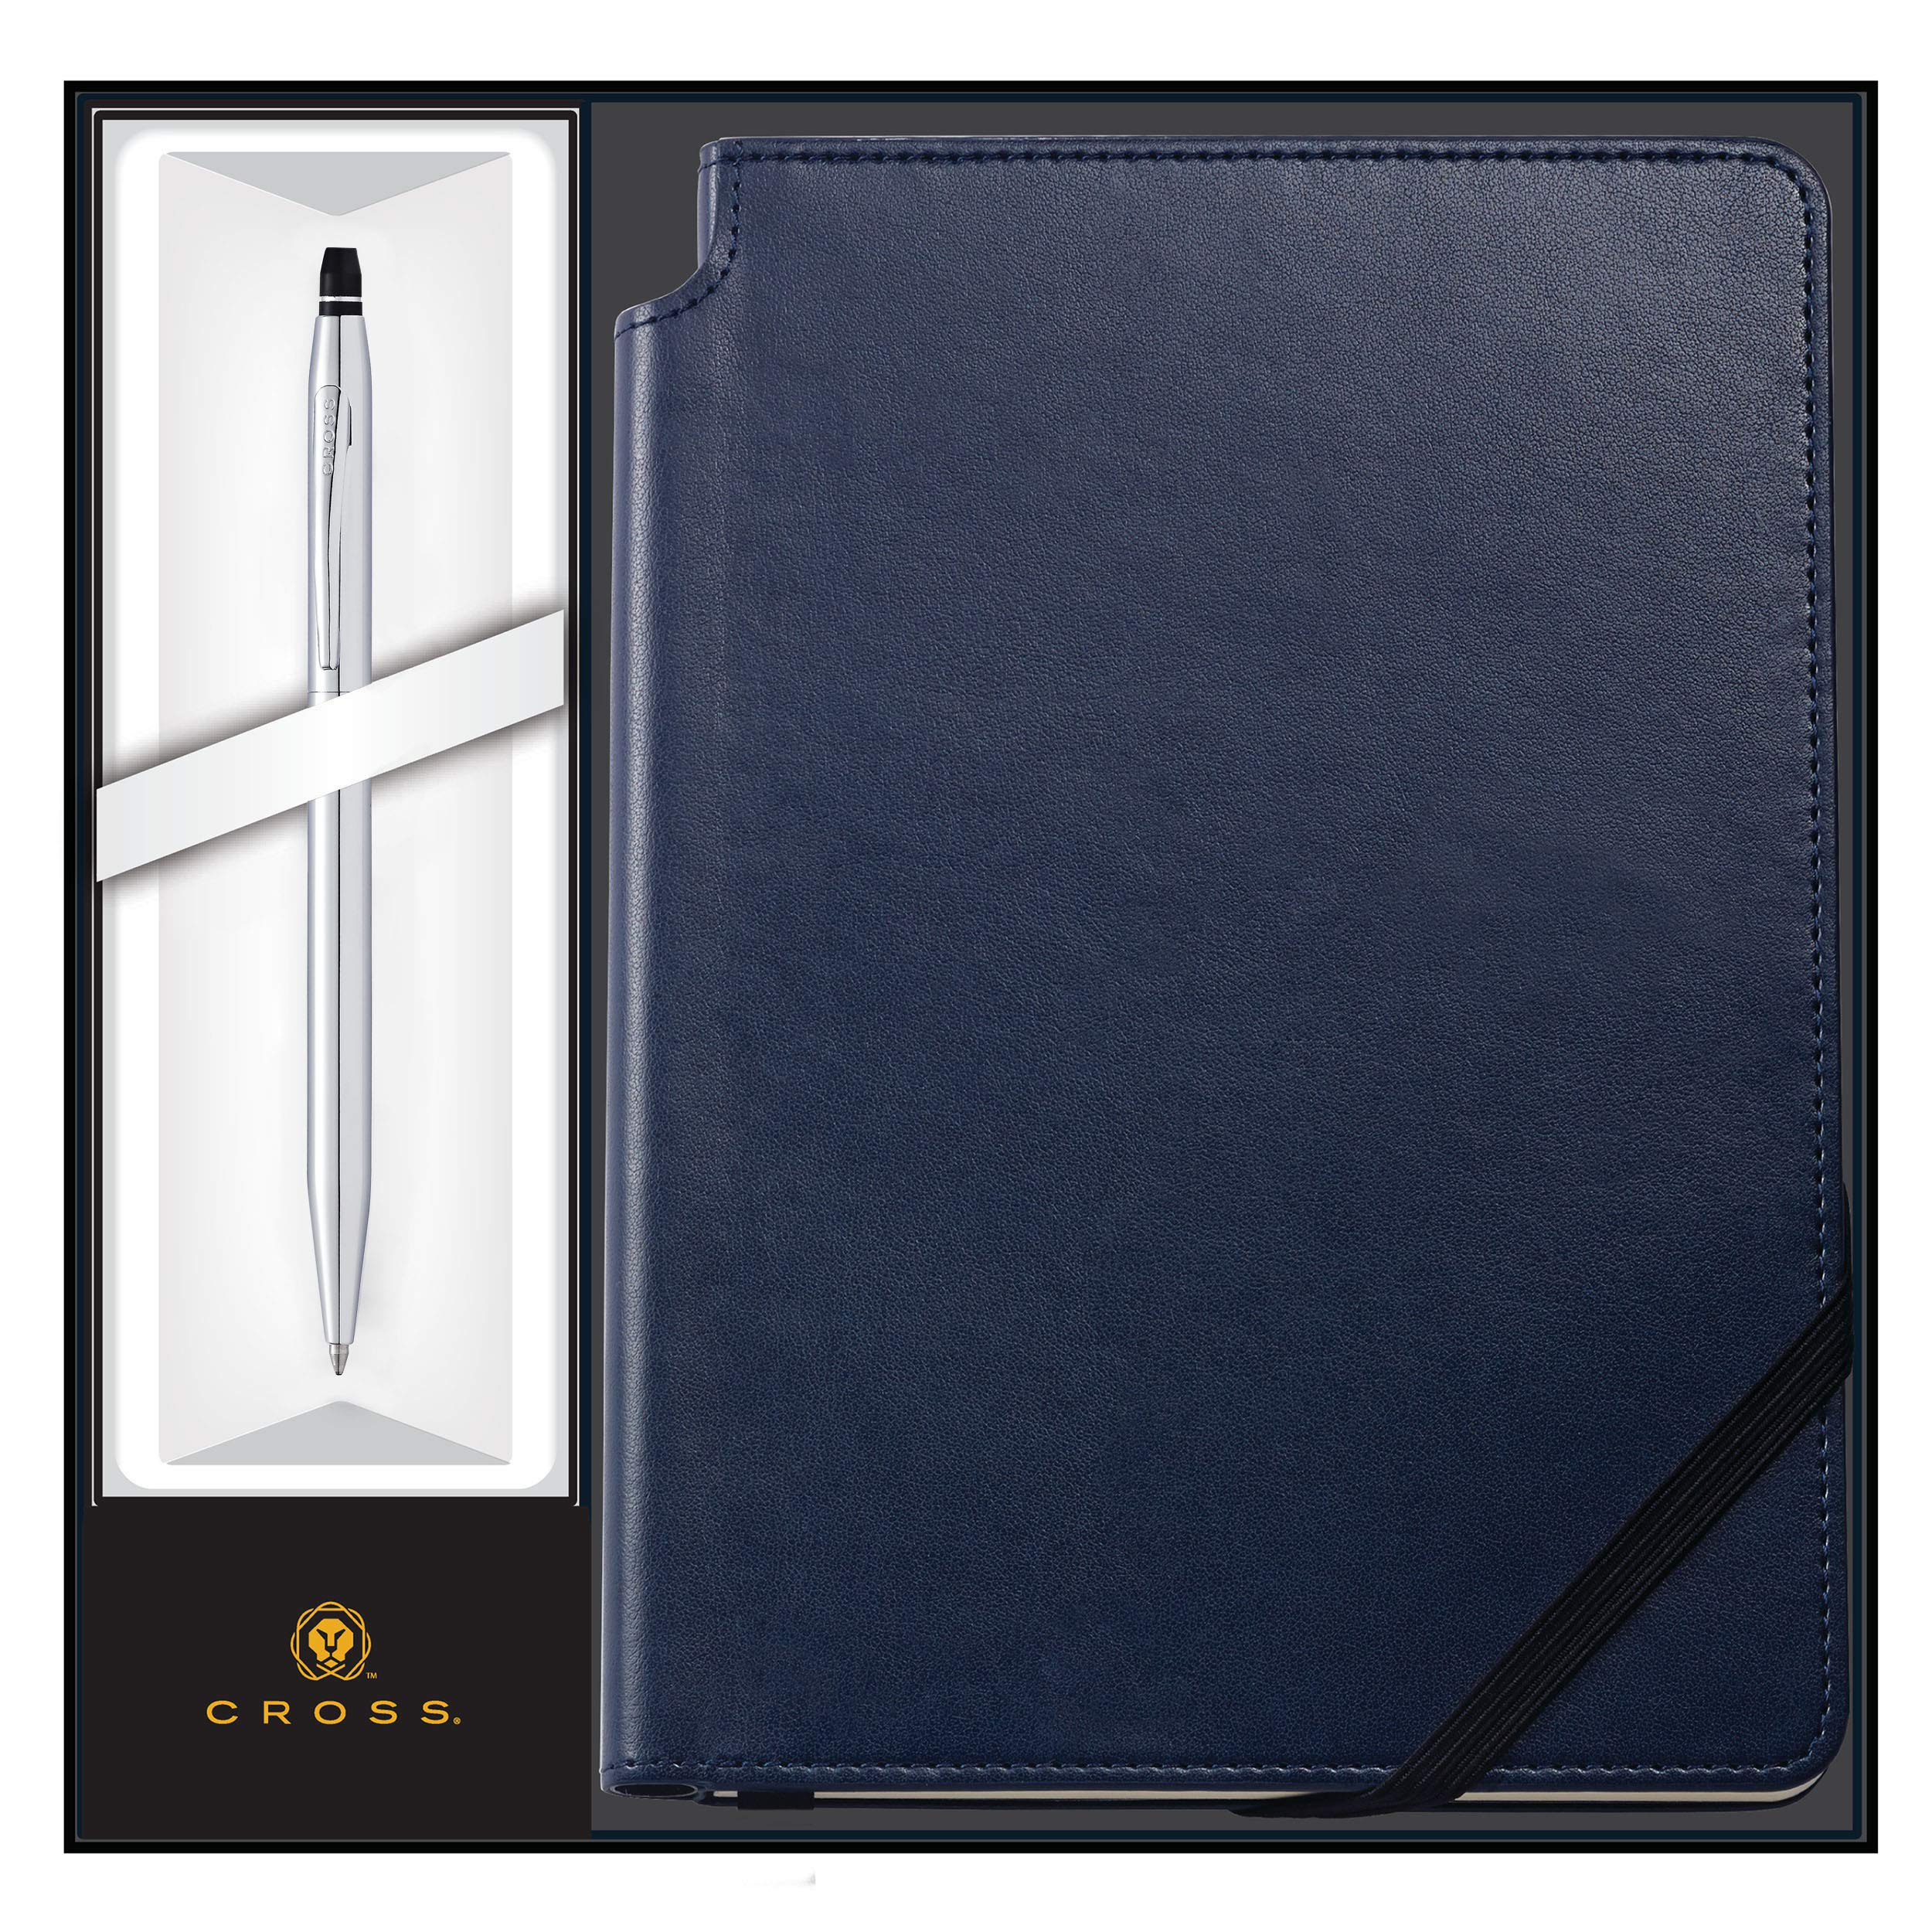 Cross Journal Set | AT Cross Personalized Pen and Journal Gift Set - Cross Click Chrome Ballpoint with a Midnight Blue Journal - Engraved. Comes in gift box.